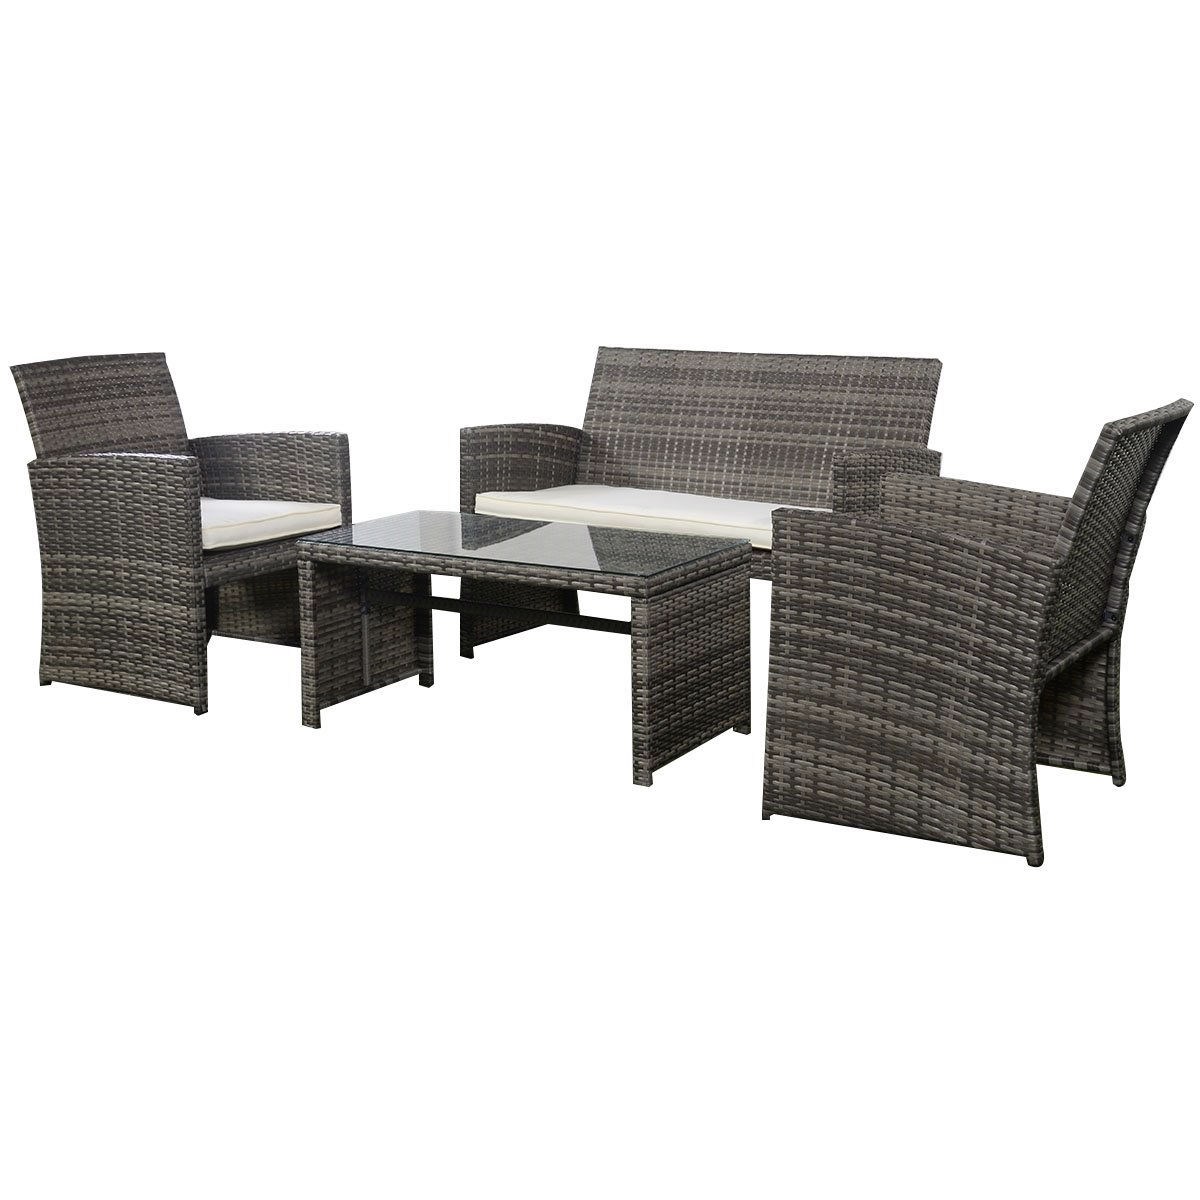 Grey resin wicker rattan 4 piece patio furniture set with seat cushions fastfurnishings com